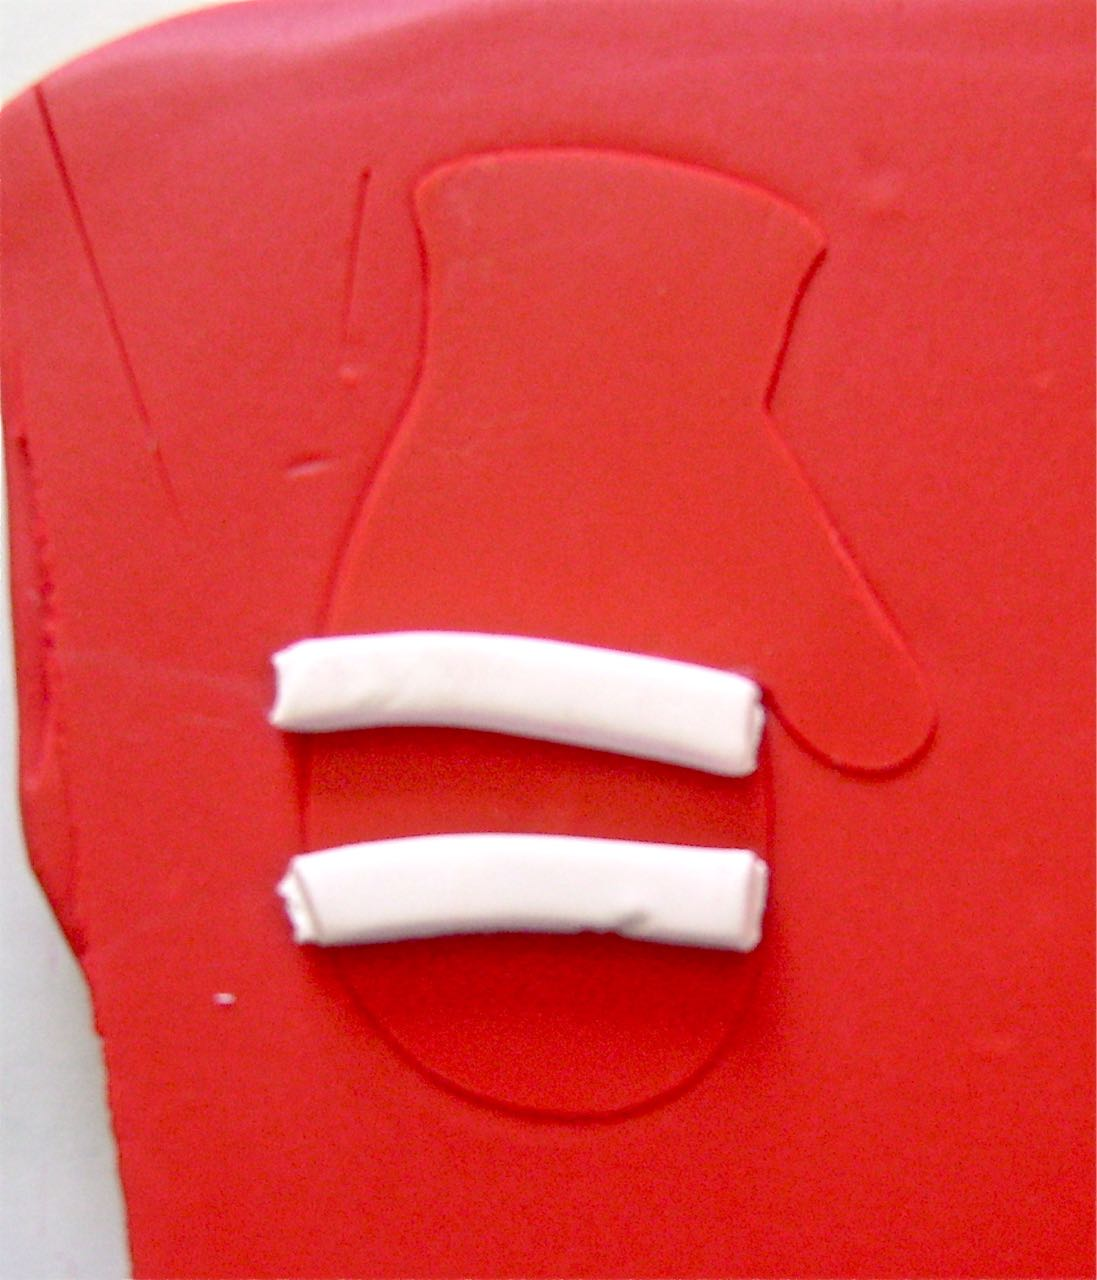 step 2 - Roll out two small pieces for stripes on the mittens.  Cut them to equal sizes and position them on the clay.